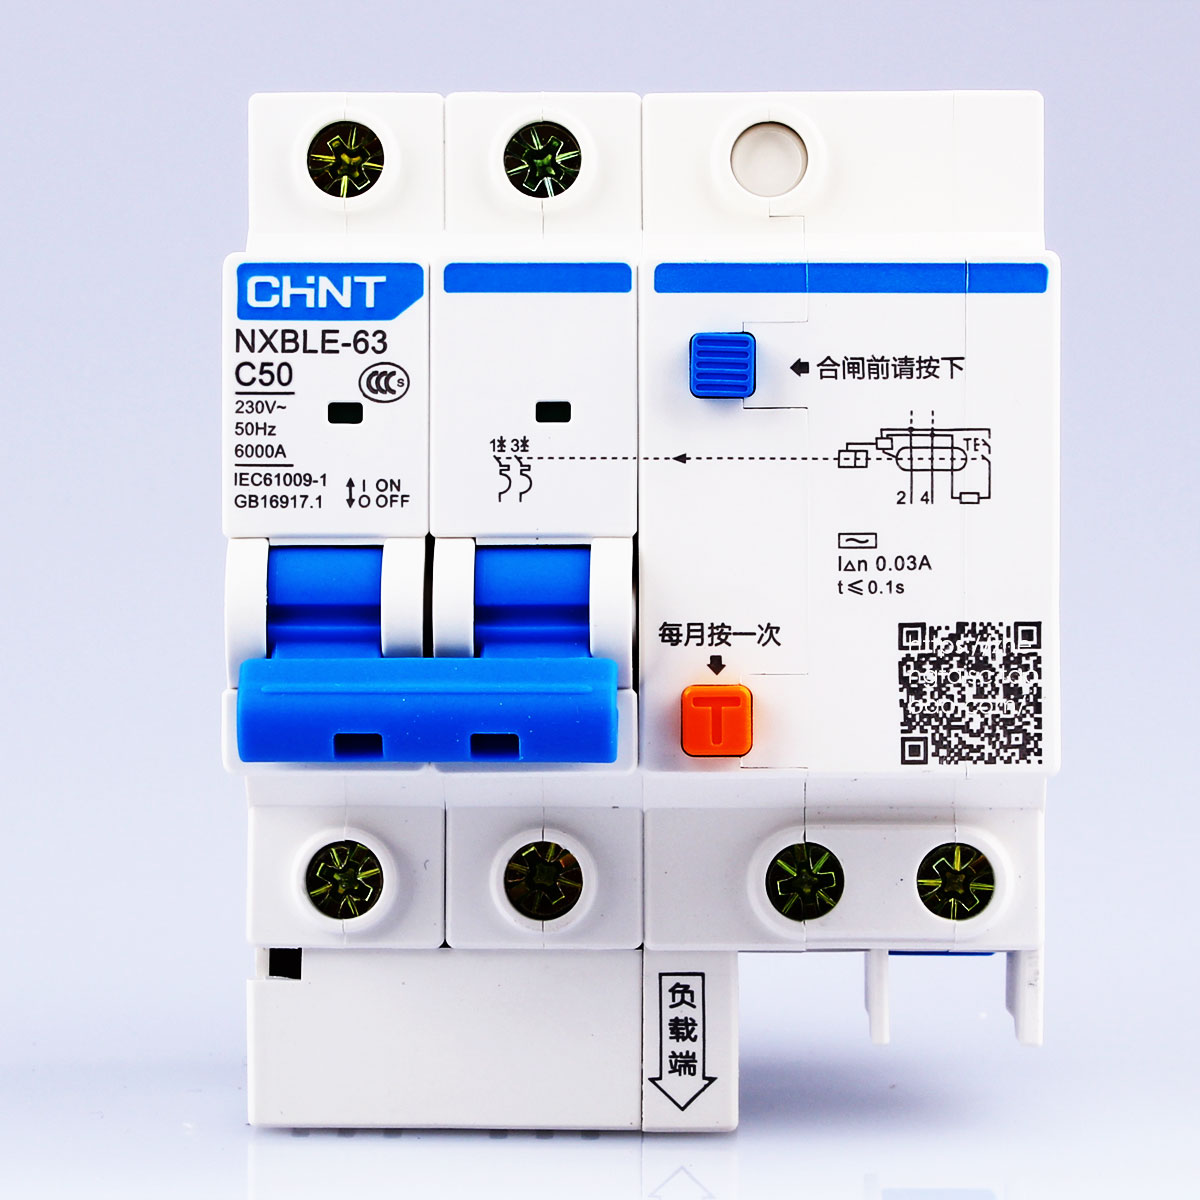 CHINT NXBLE-63 2P 6A 10A 16A 20A 25A 32A 40A 50A 63A 230V 50/60HZ RCBO Earth Leakage Circuit Breakers With Leakage Protection idpna vigi dpnl rcbo 6a 32a 25a 20a 16a 10a 18mm 230v 30ma residual current circuit breaker leakage protection mcb a9d91620